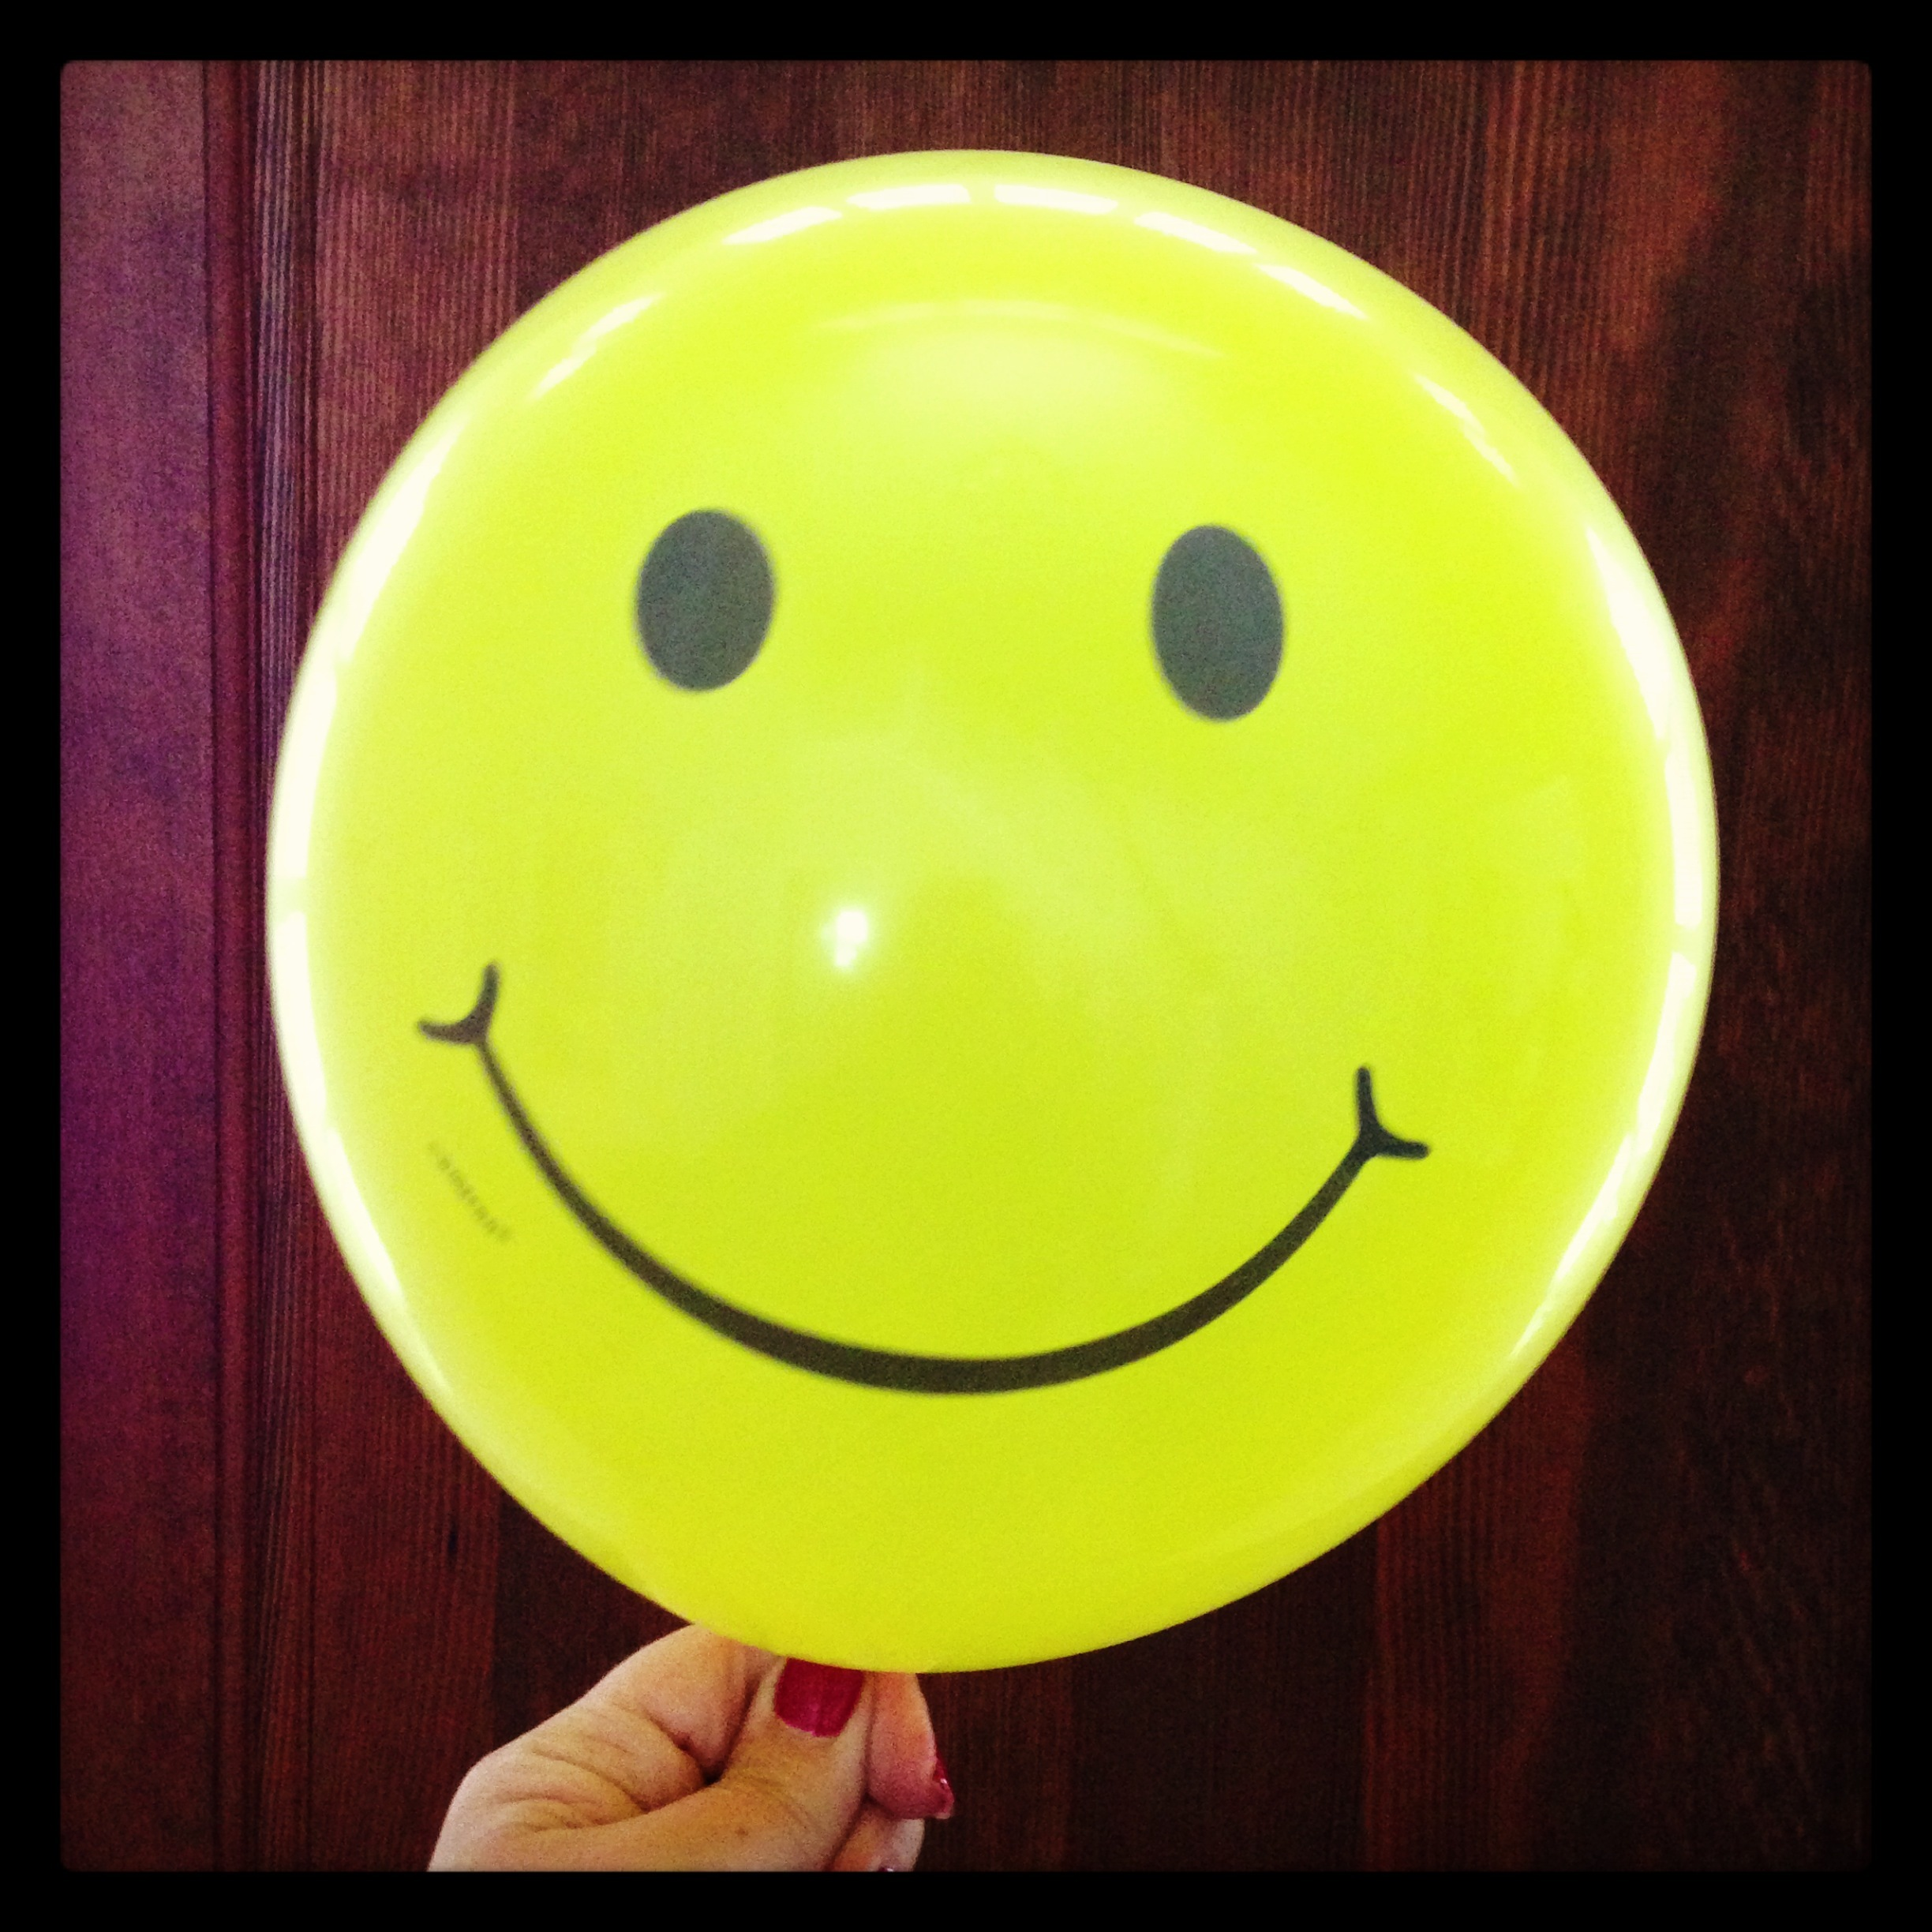 2013-04-08-Smileyballoon.jpg